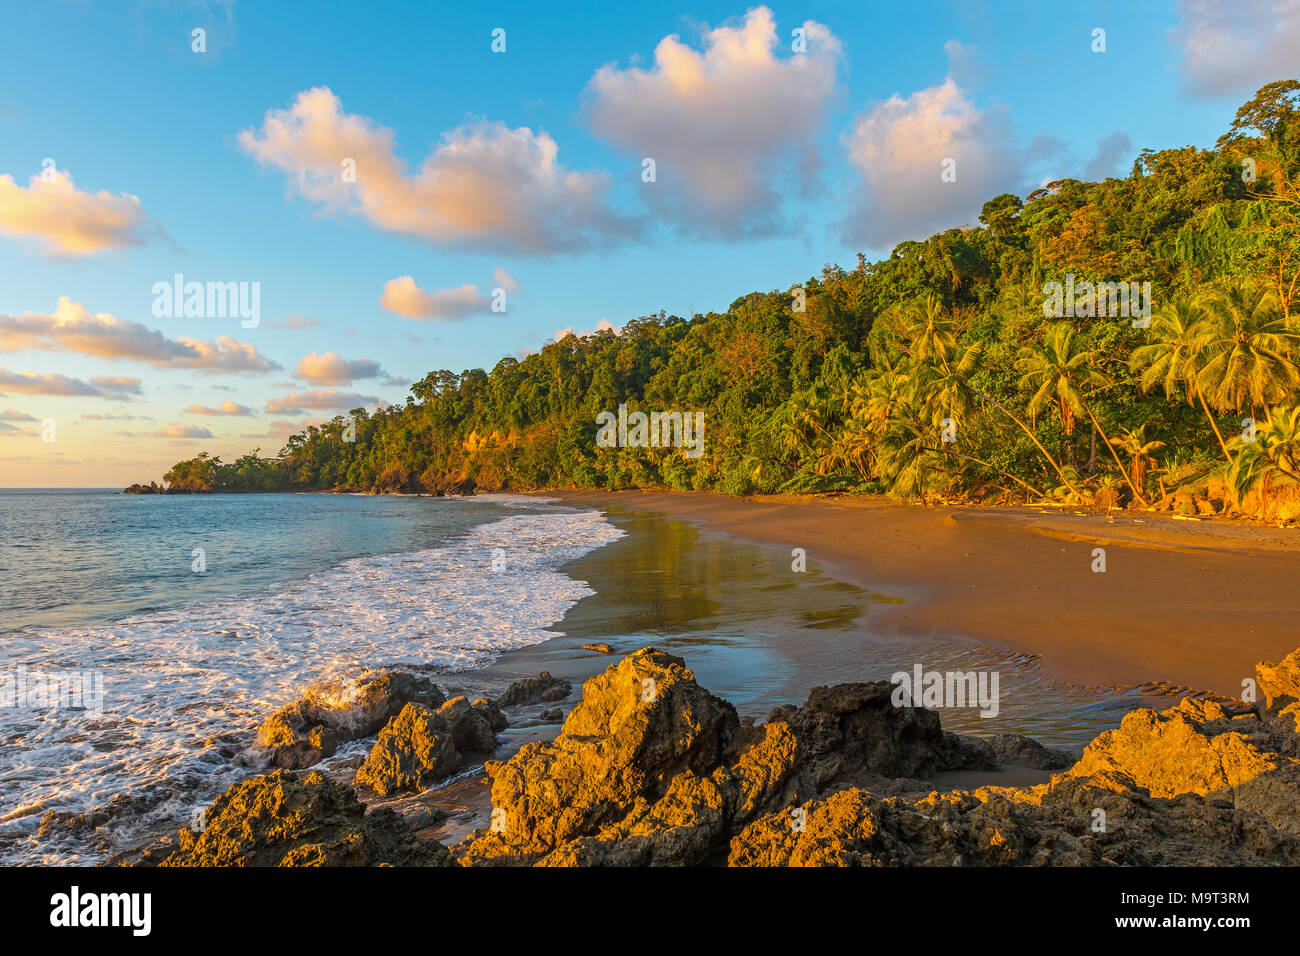 Sunset along the Pacific Ocean and tropical rainforest of Corcovado national park in Costa Rica, Central America. - Stock Image